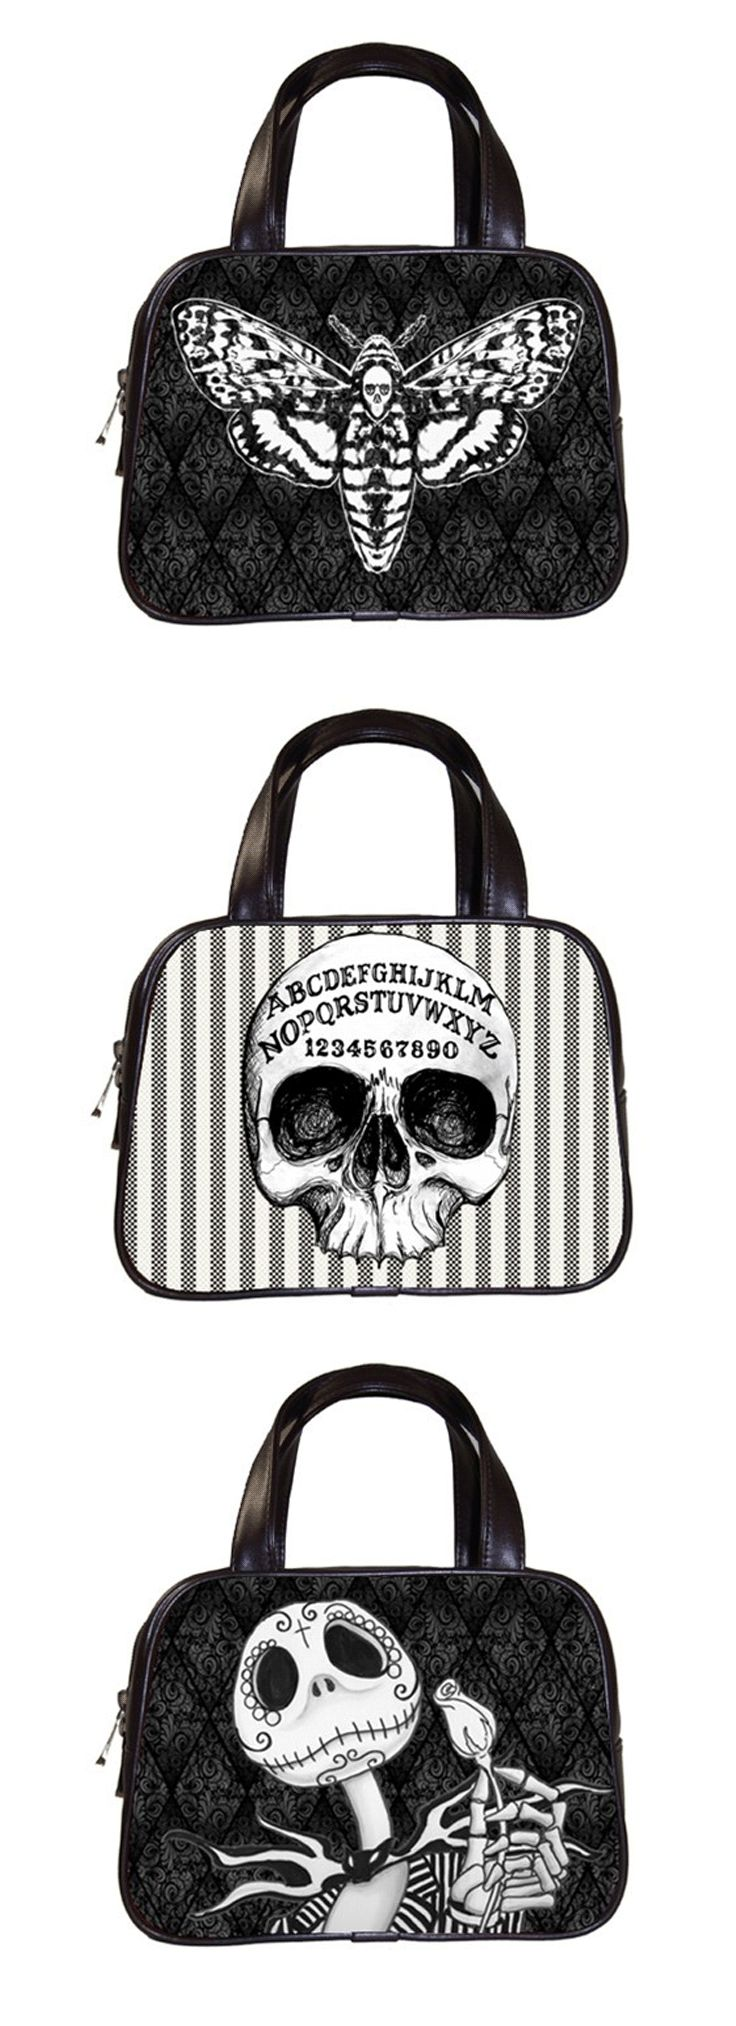 Shop cheap goth handbags and purses at RebelsMarket!